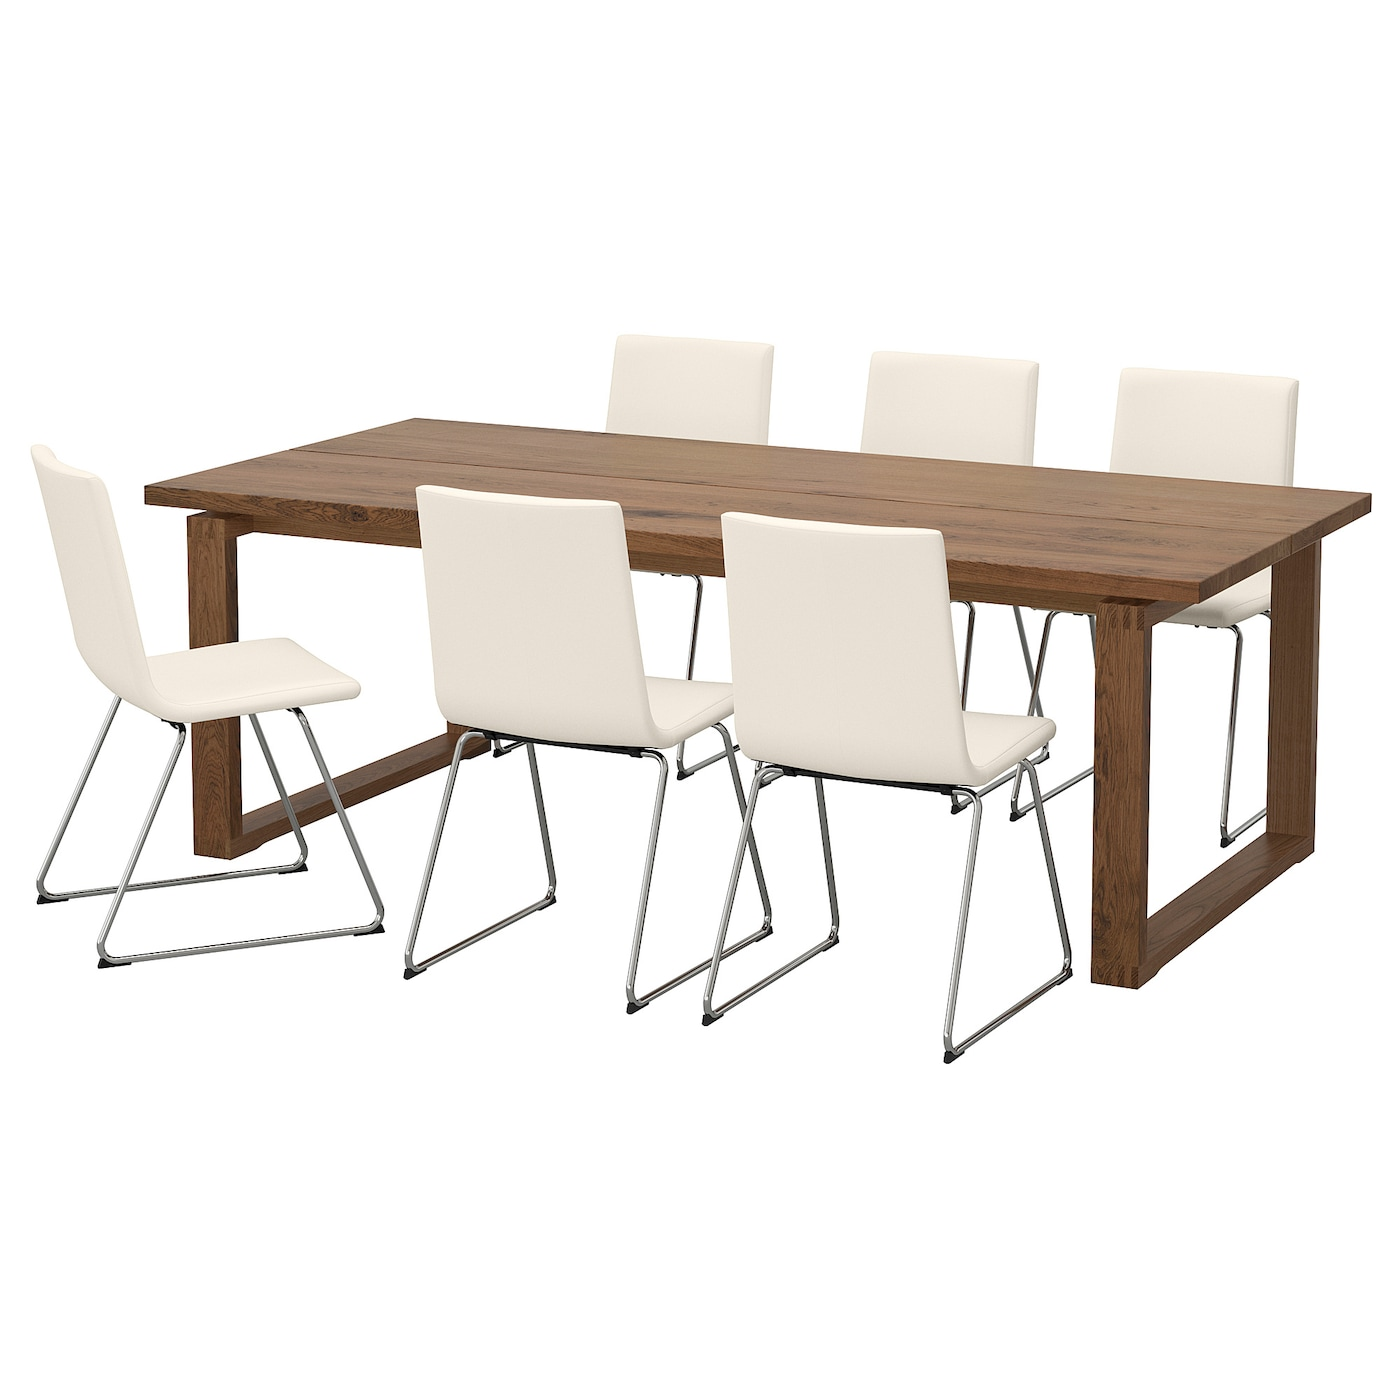 Volfgang m rbyl nga table et 6 chaises brun bomstad blanc for Table et 6 chaises ikea